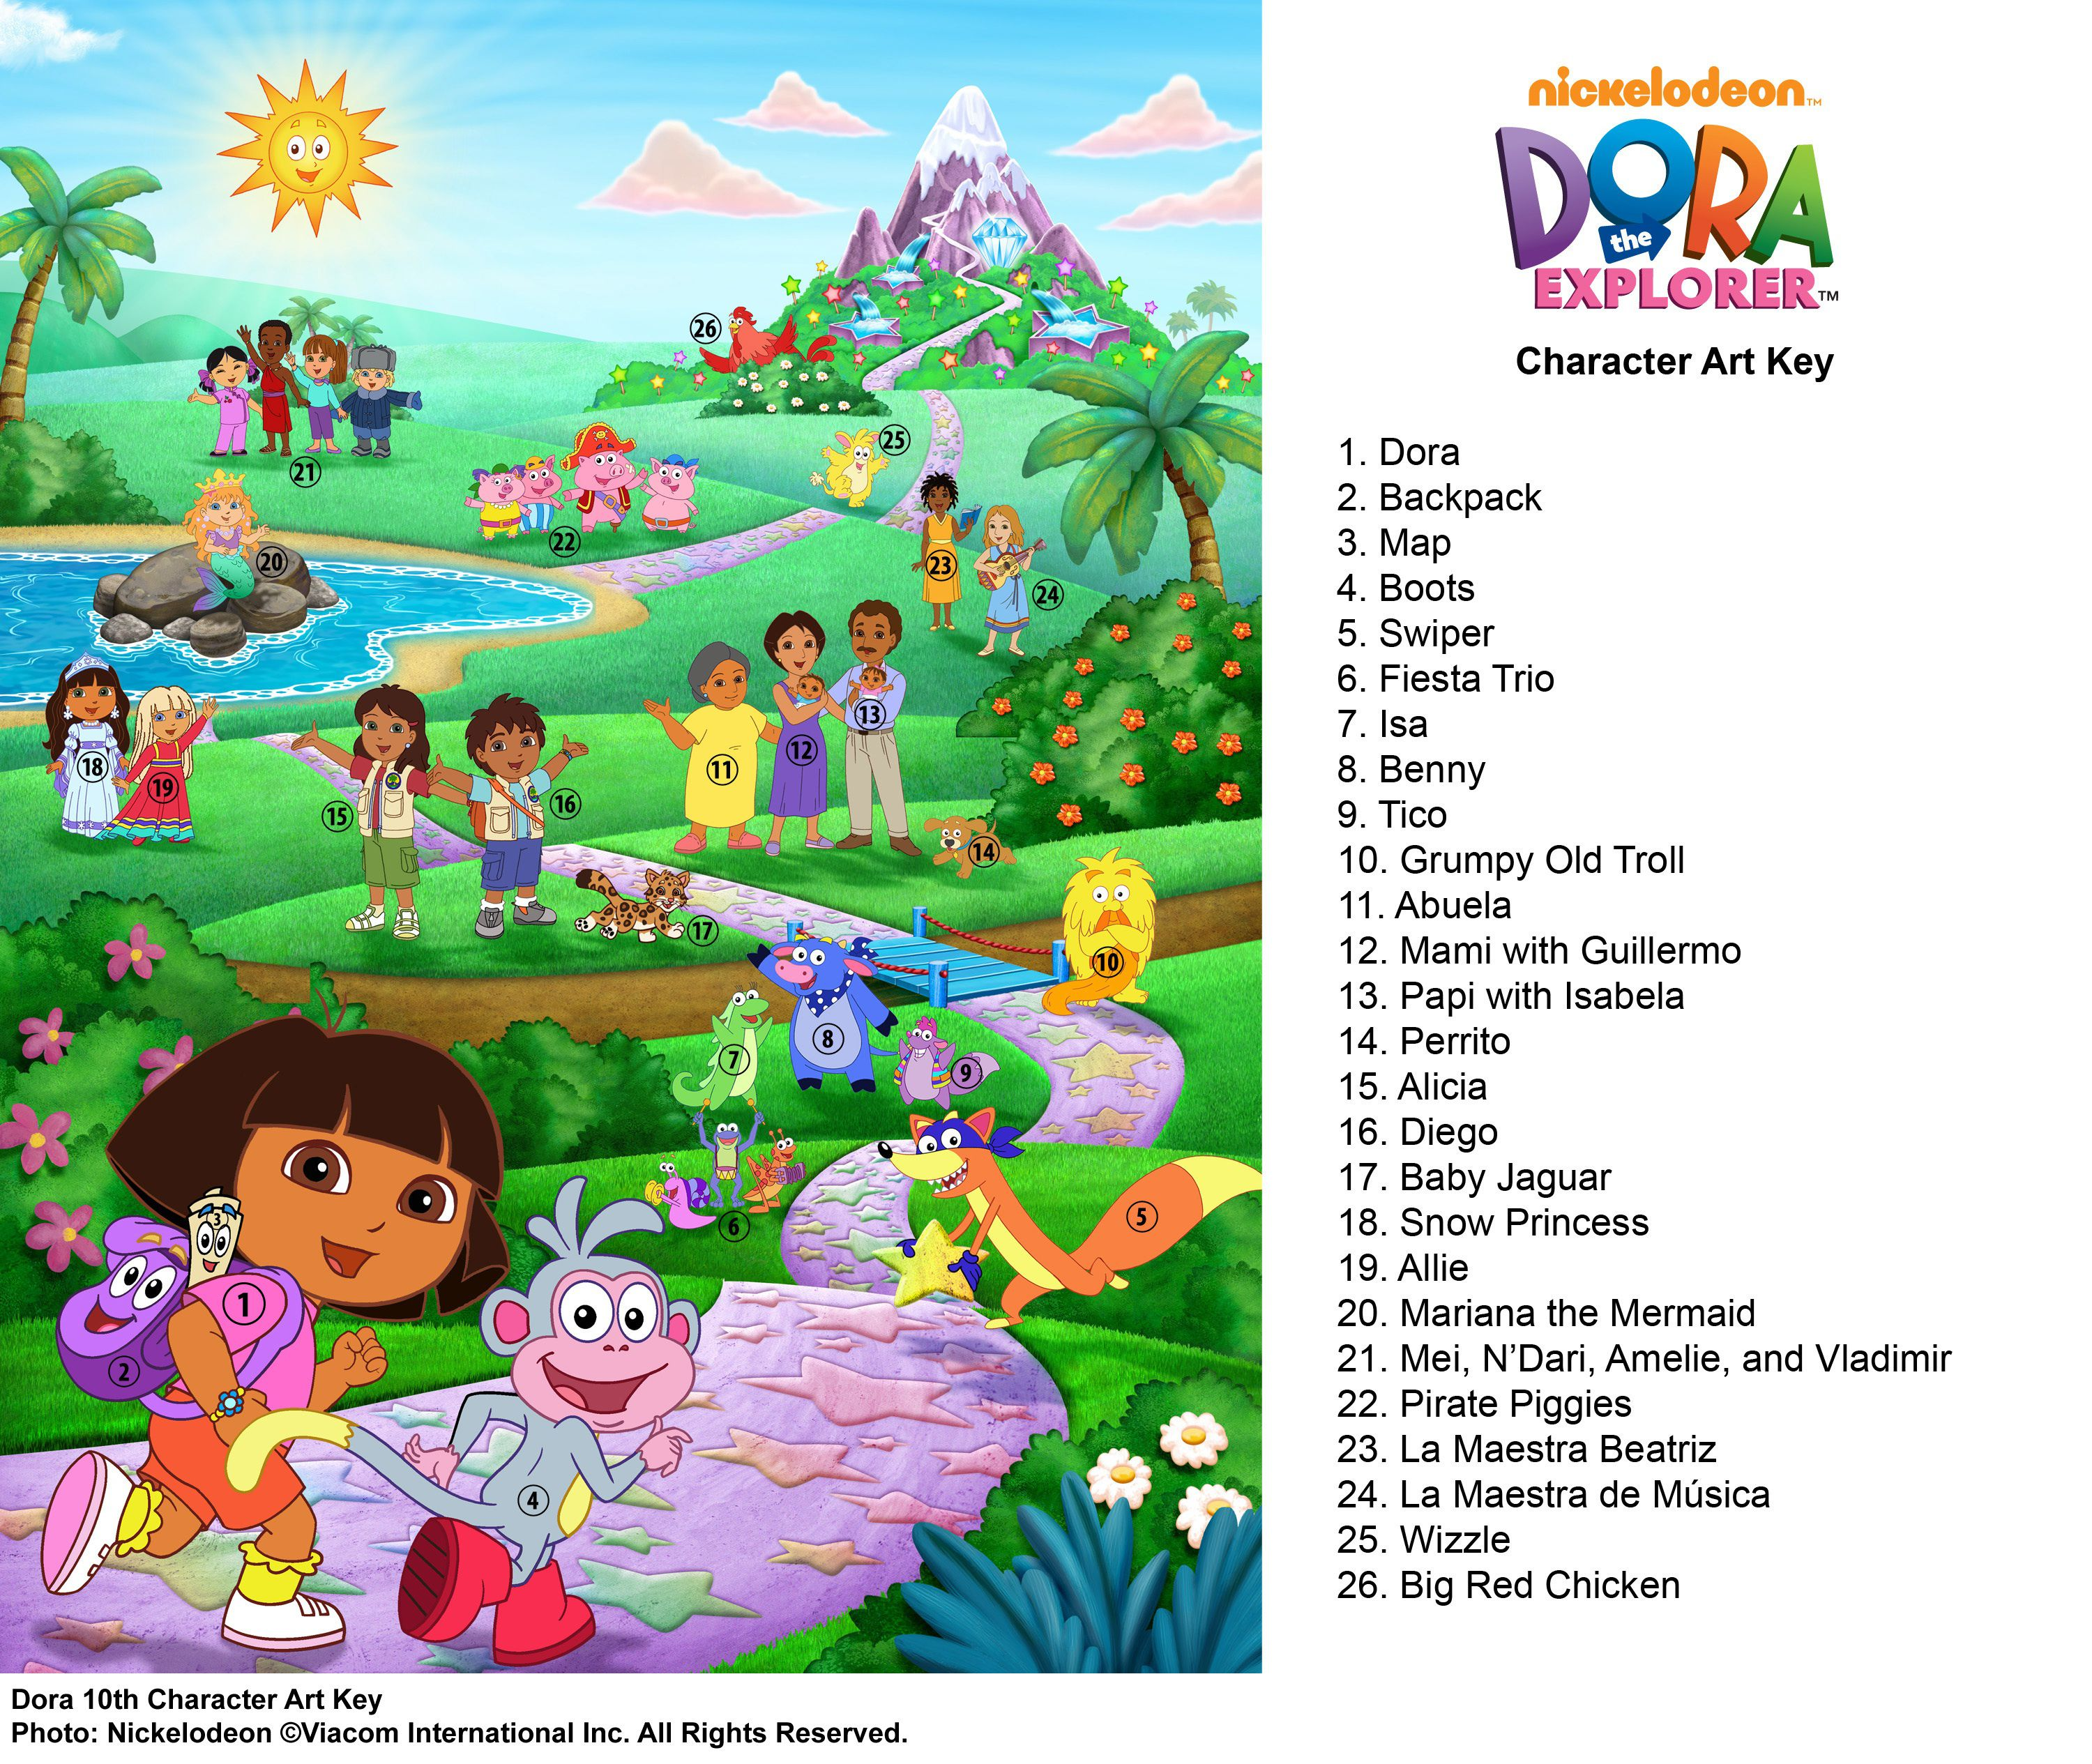 14 Fun Facts About Dora The Explorer